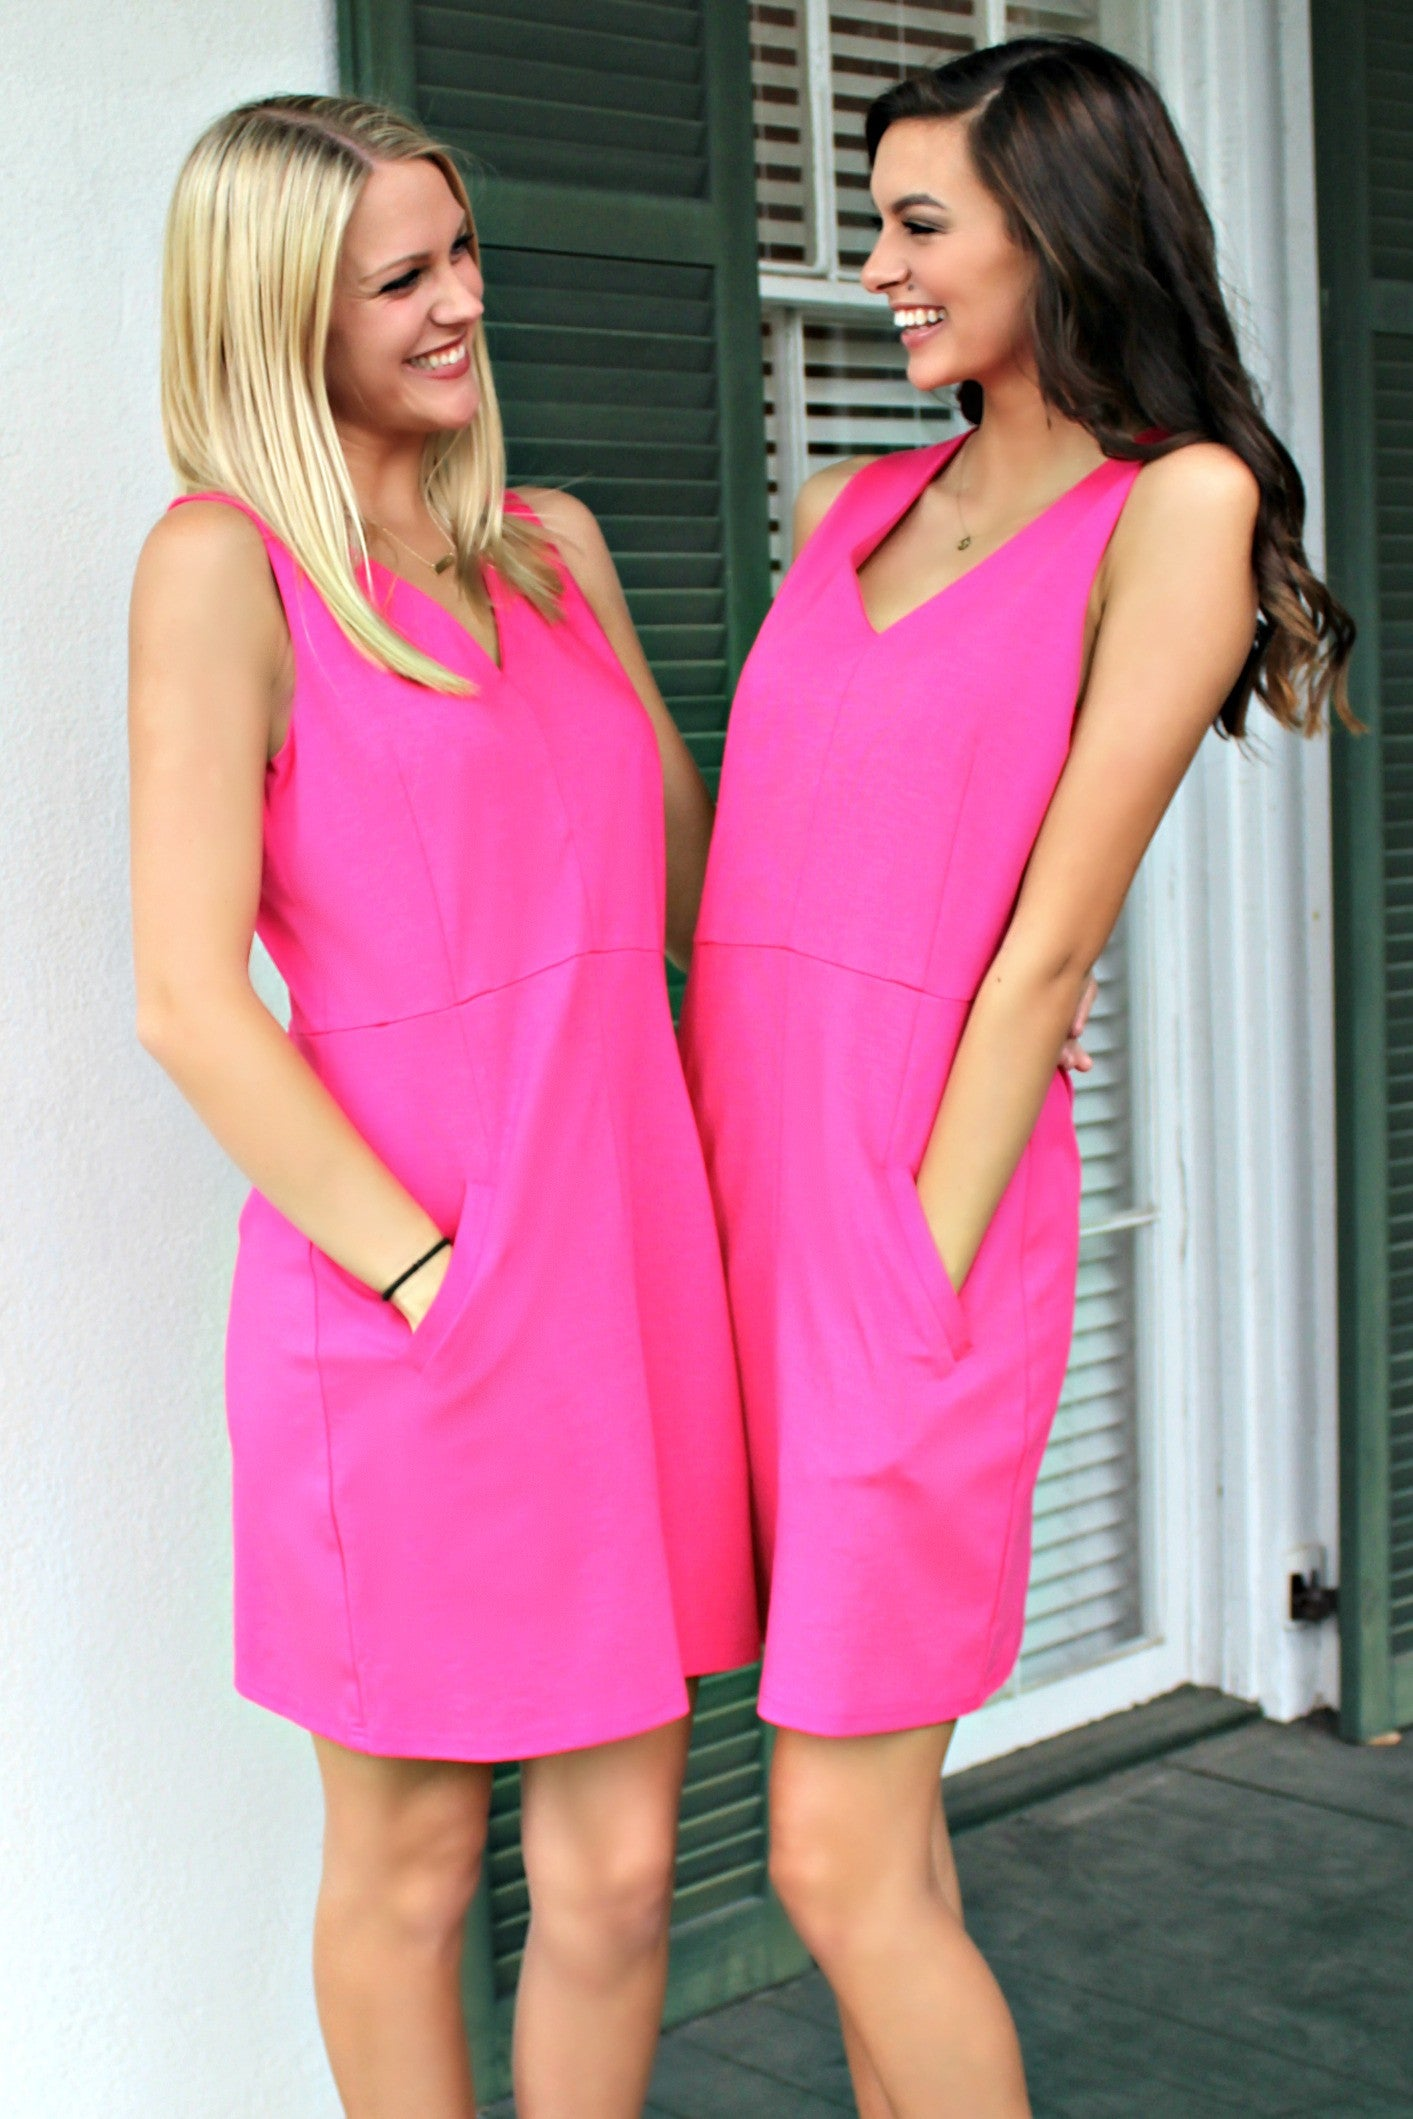 Jade: Julie Dress, Pink